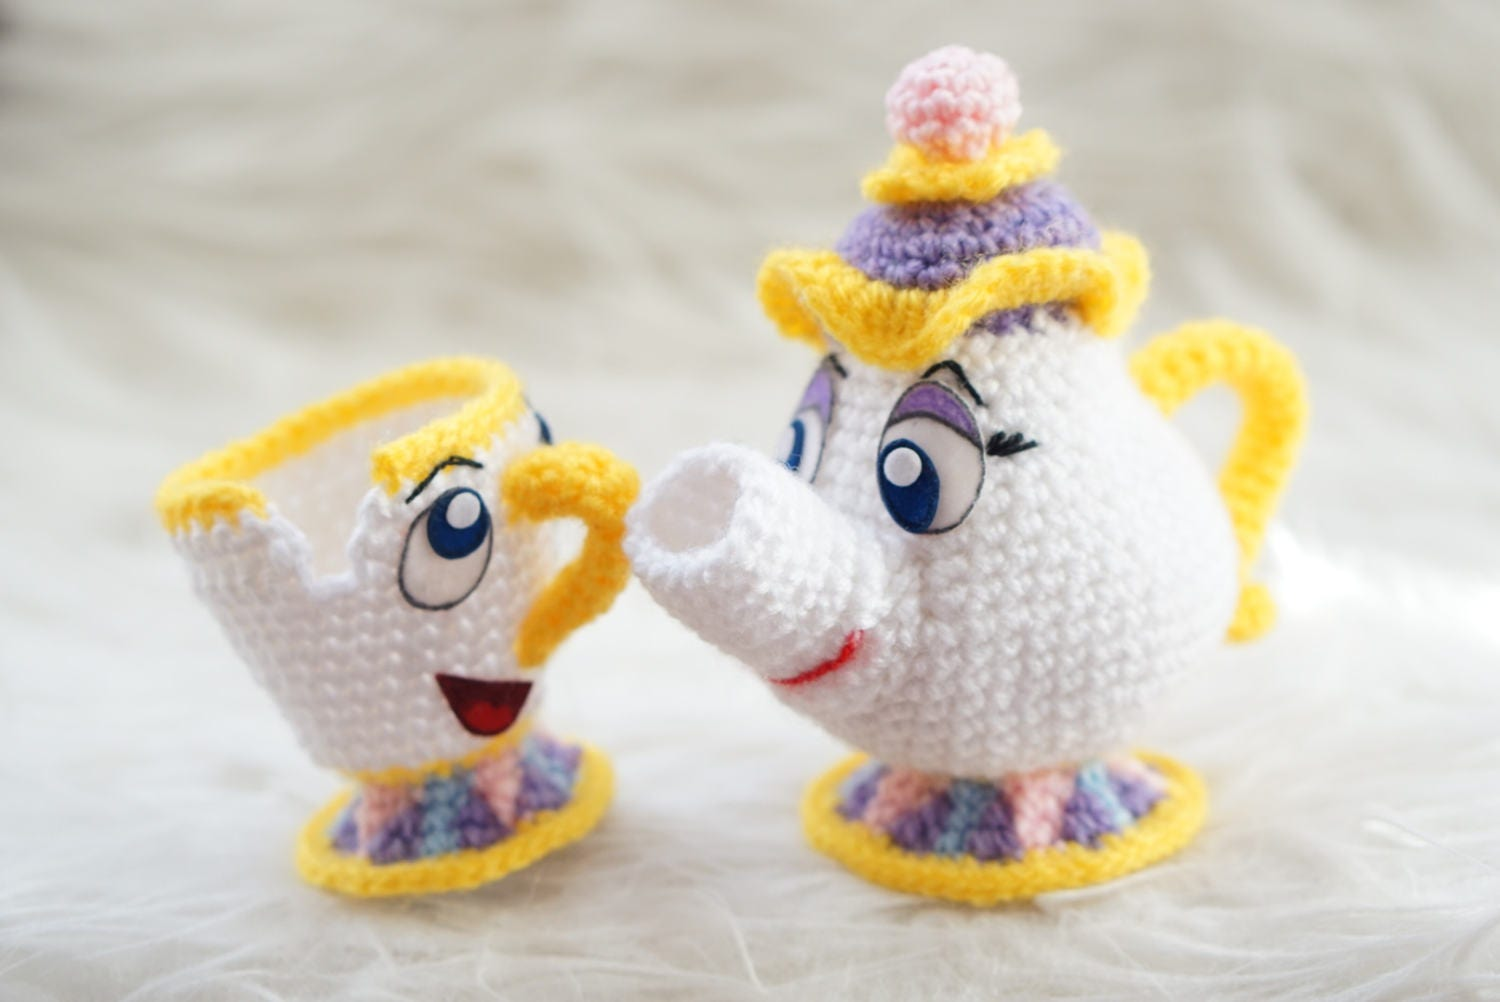 Mrs potts chip christmas decoration - Pack 2 In 1 Mrs Potts And Chip Beauty And The Beast Amigurumi Pattern Disney Movie